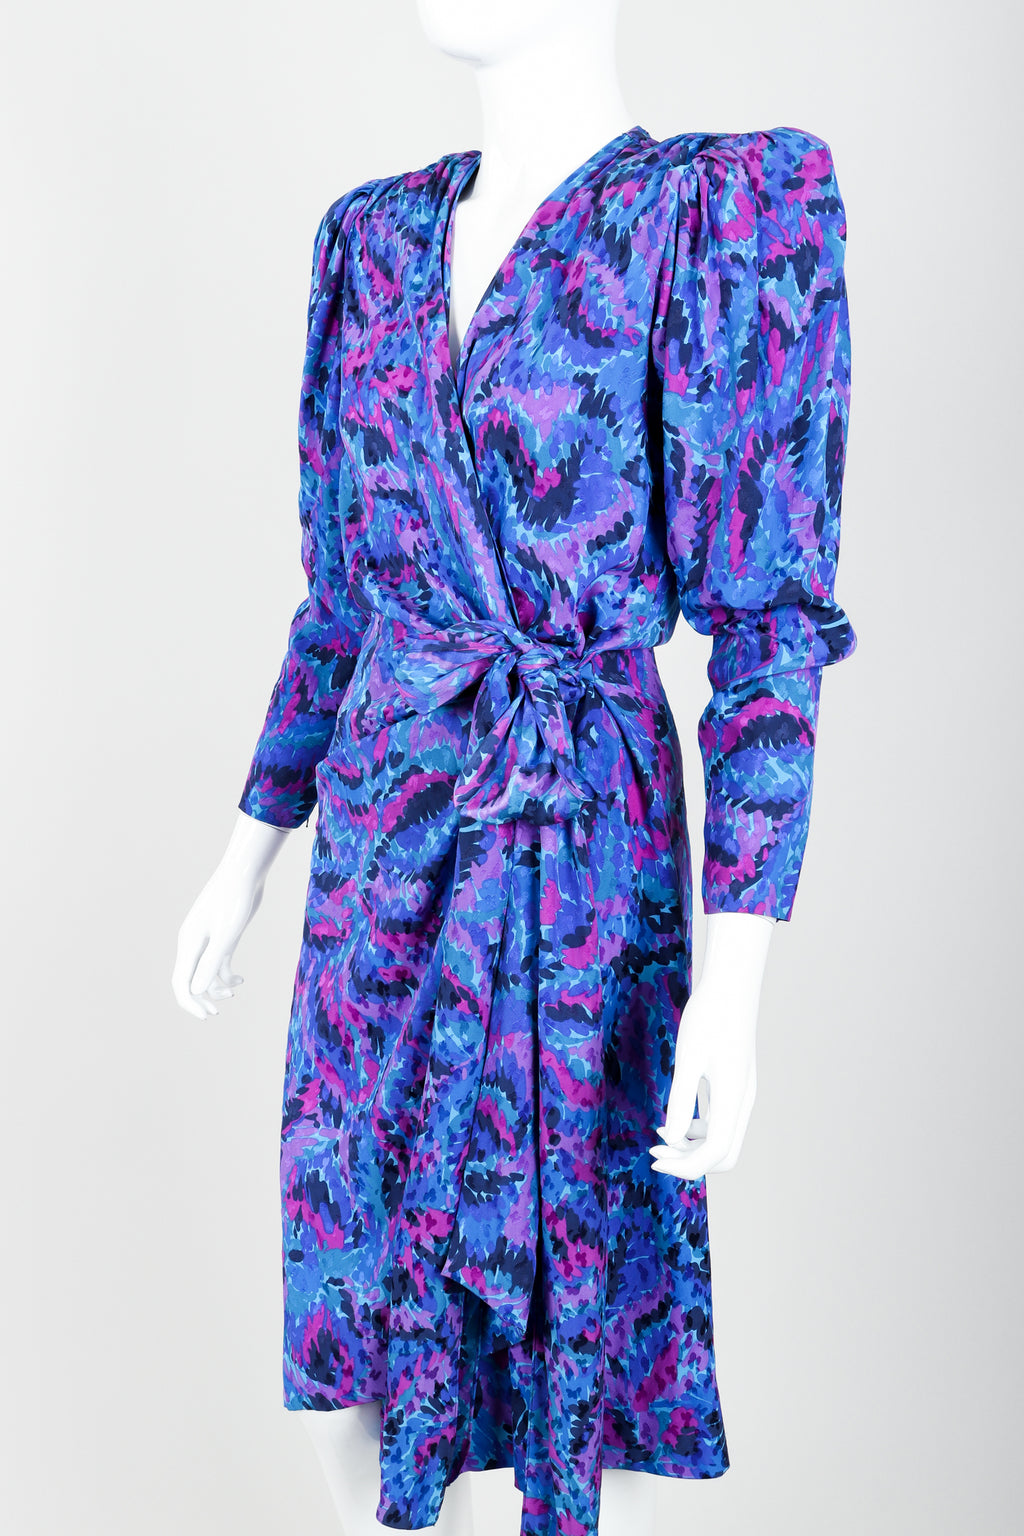 Vintage YSL Yves Saint Laurent Impressionist Wrap Dress on Mannequin Angle Crop at Recess